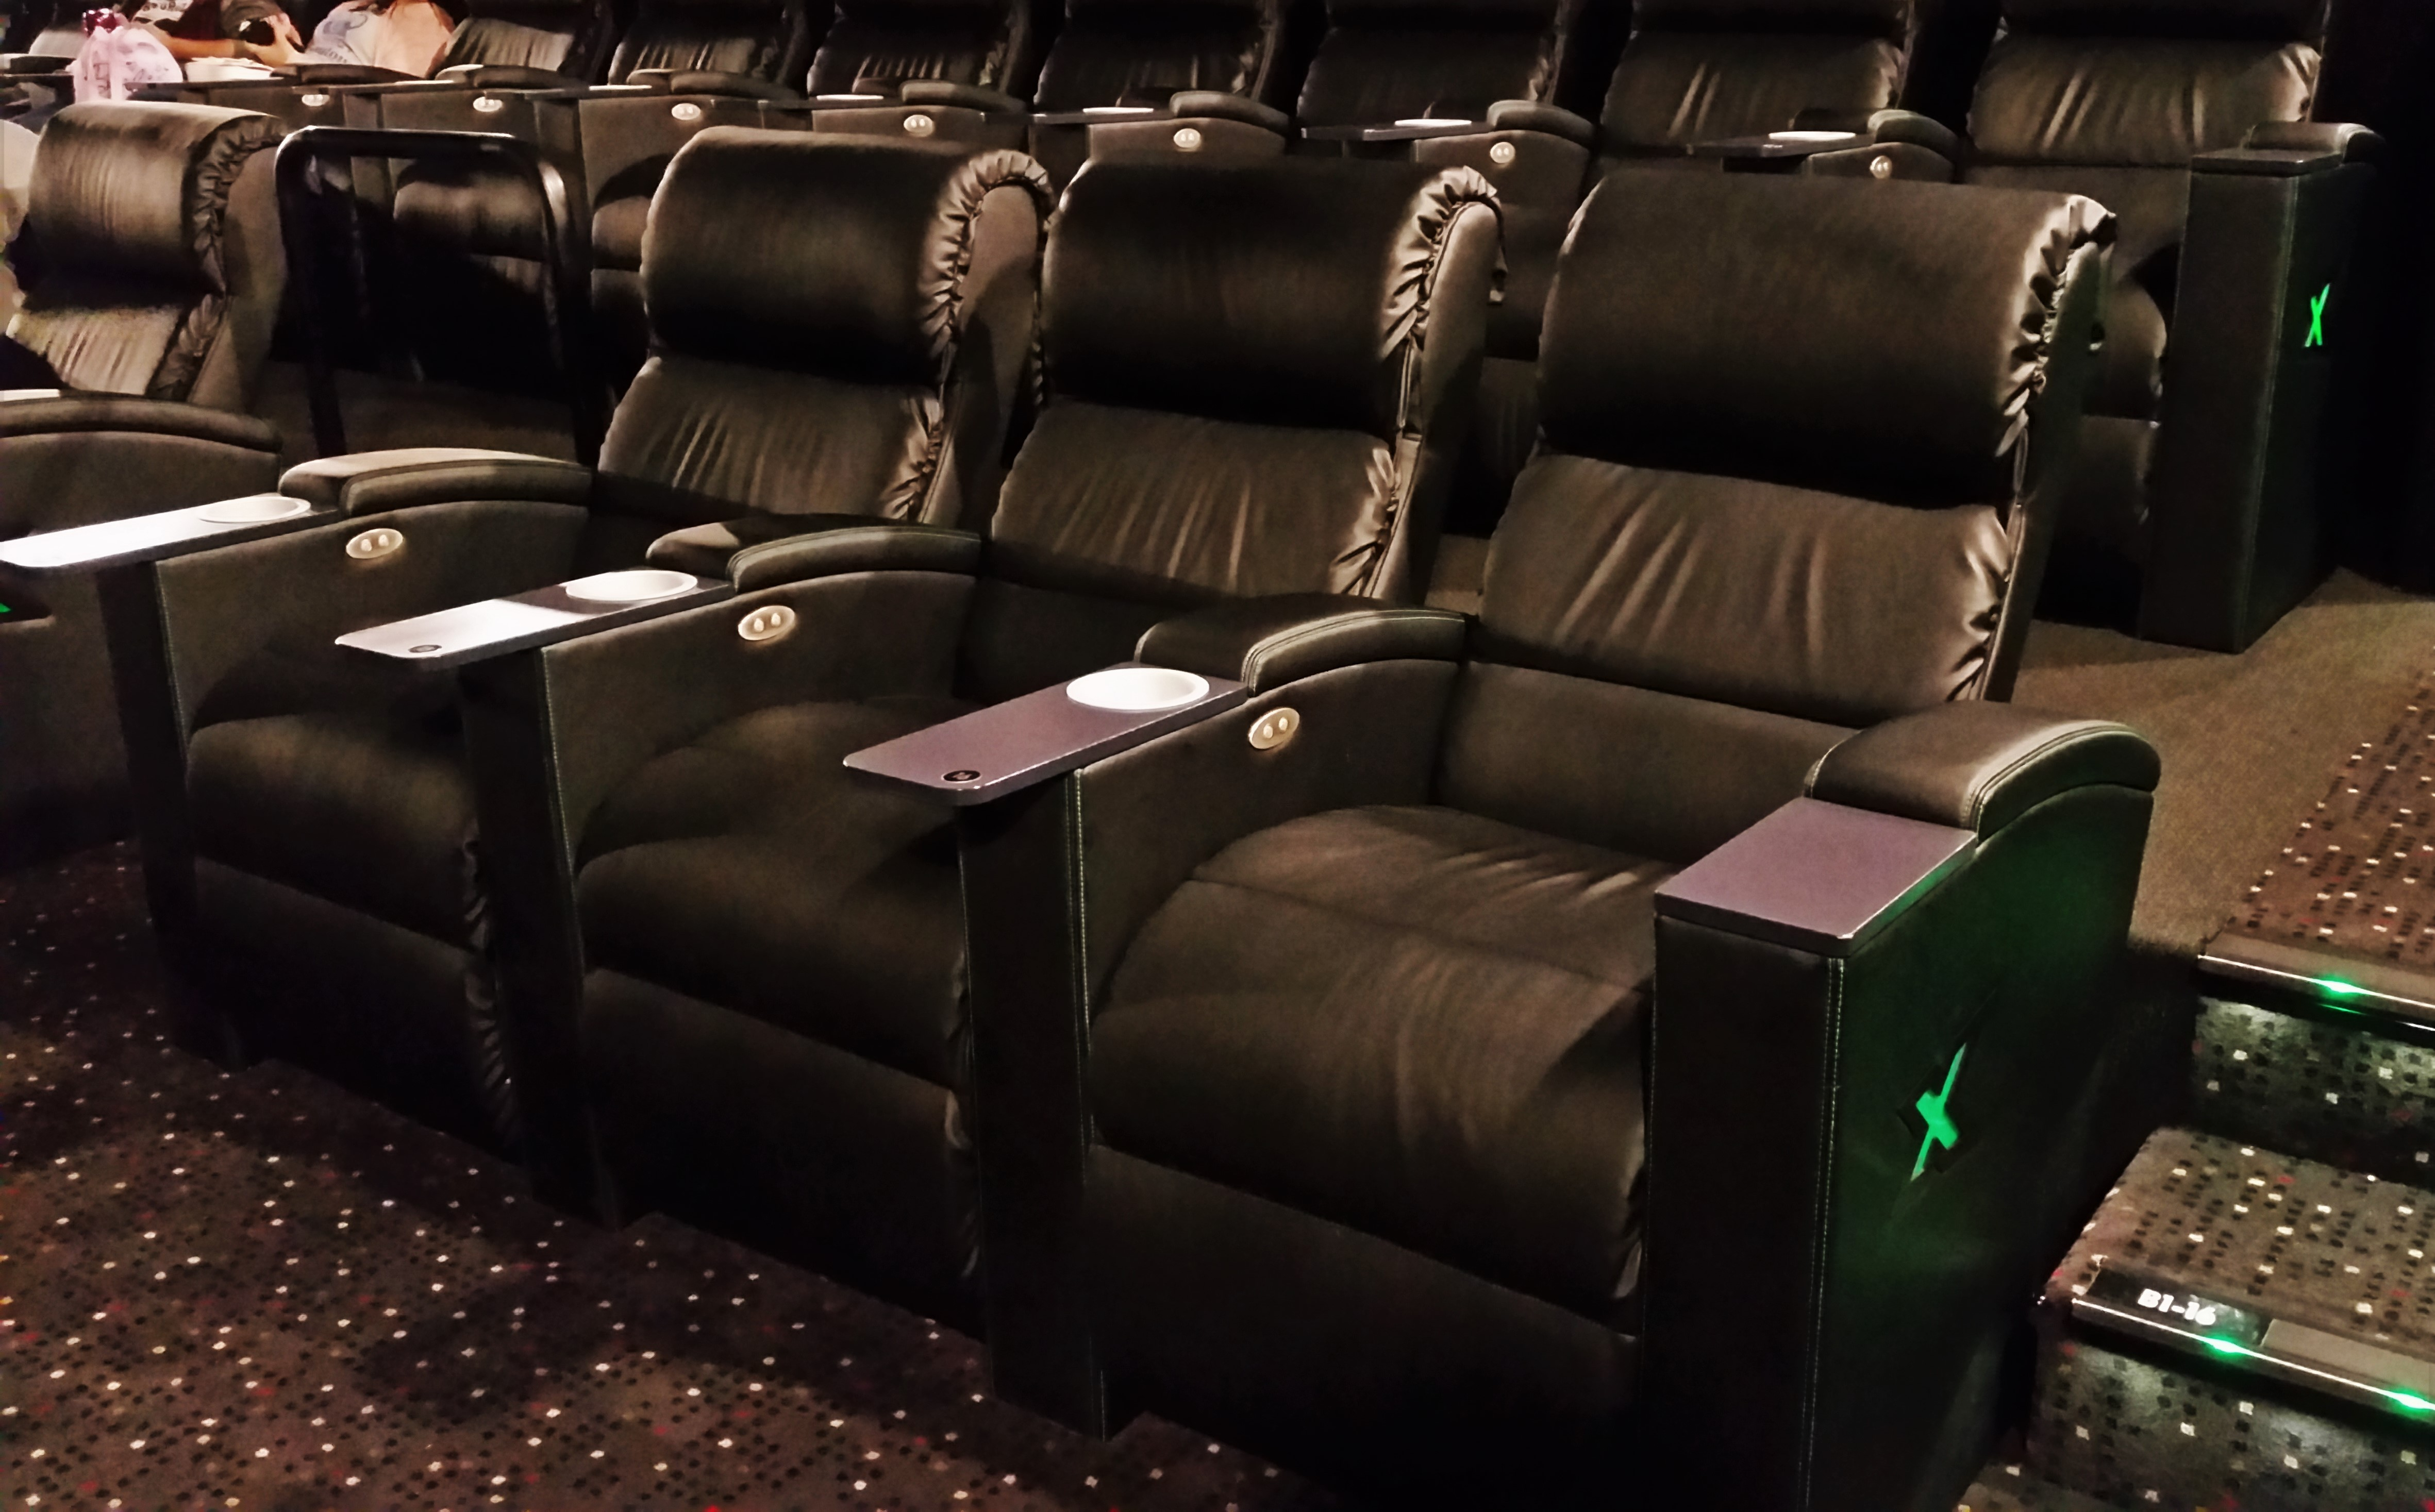 Image credit: http://www.weekendnotes.com/hoyts-sunnybank/